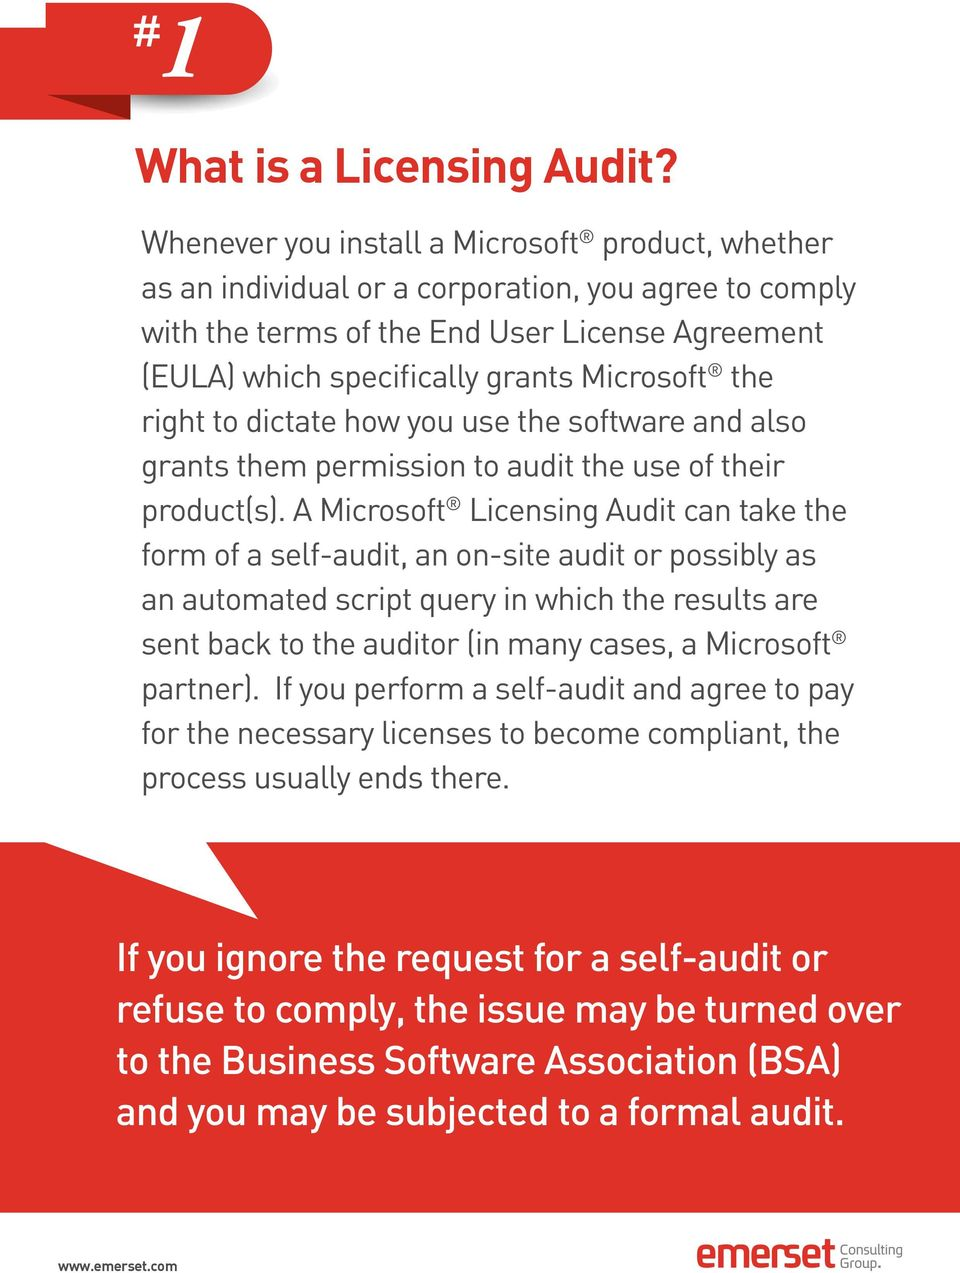 the right to dictate how you use the software and also grants them permission to audit the use of their product(s).